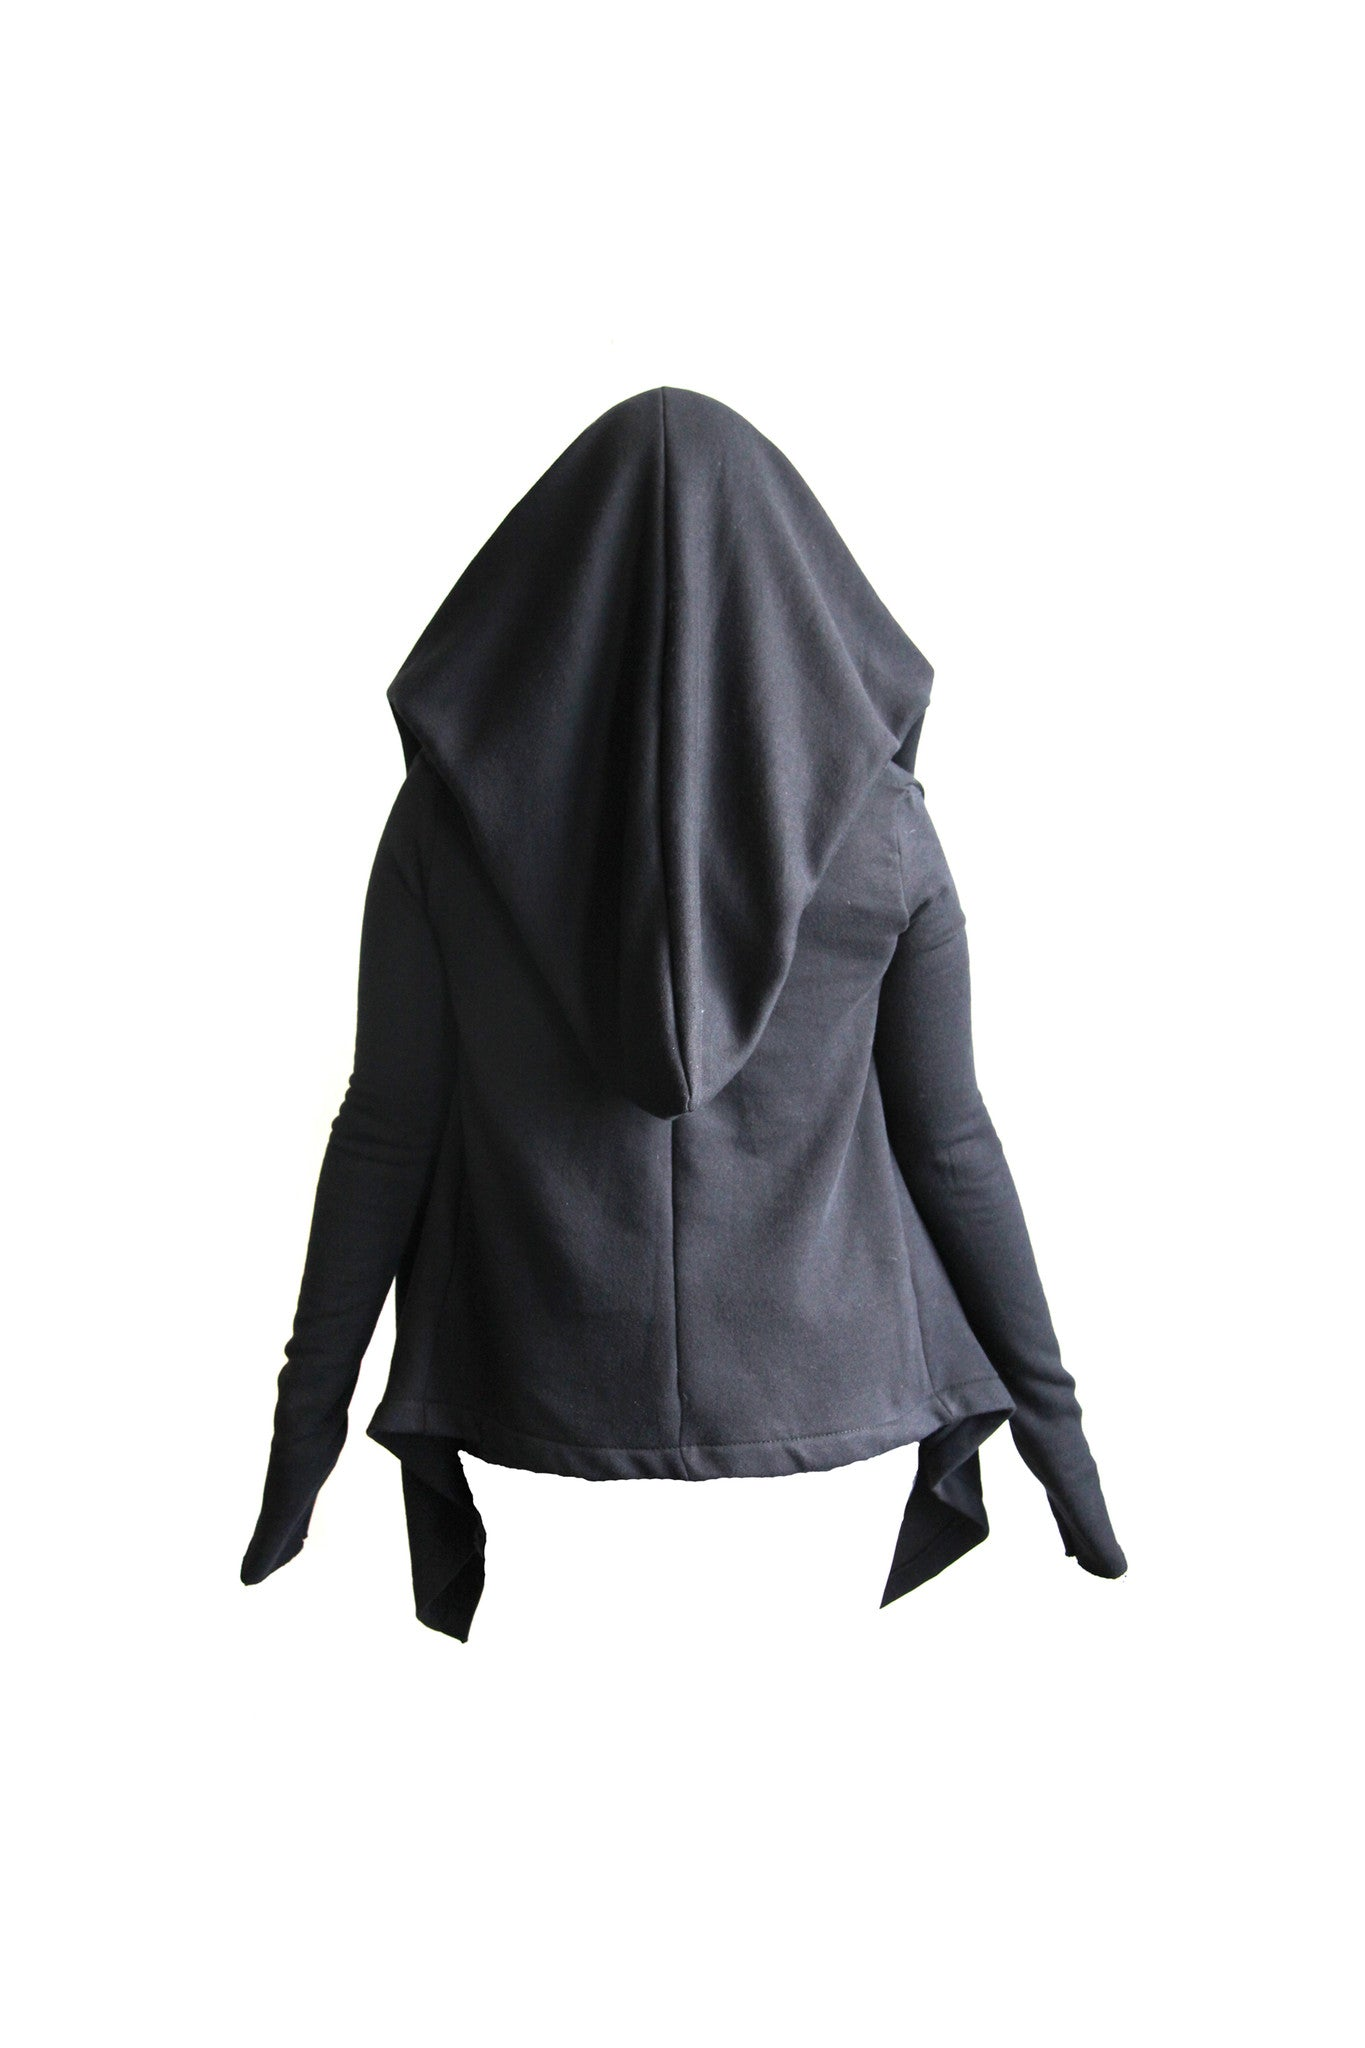 Return of the Blind Dead Hoodie